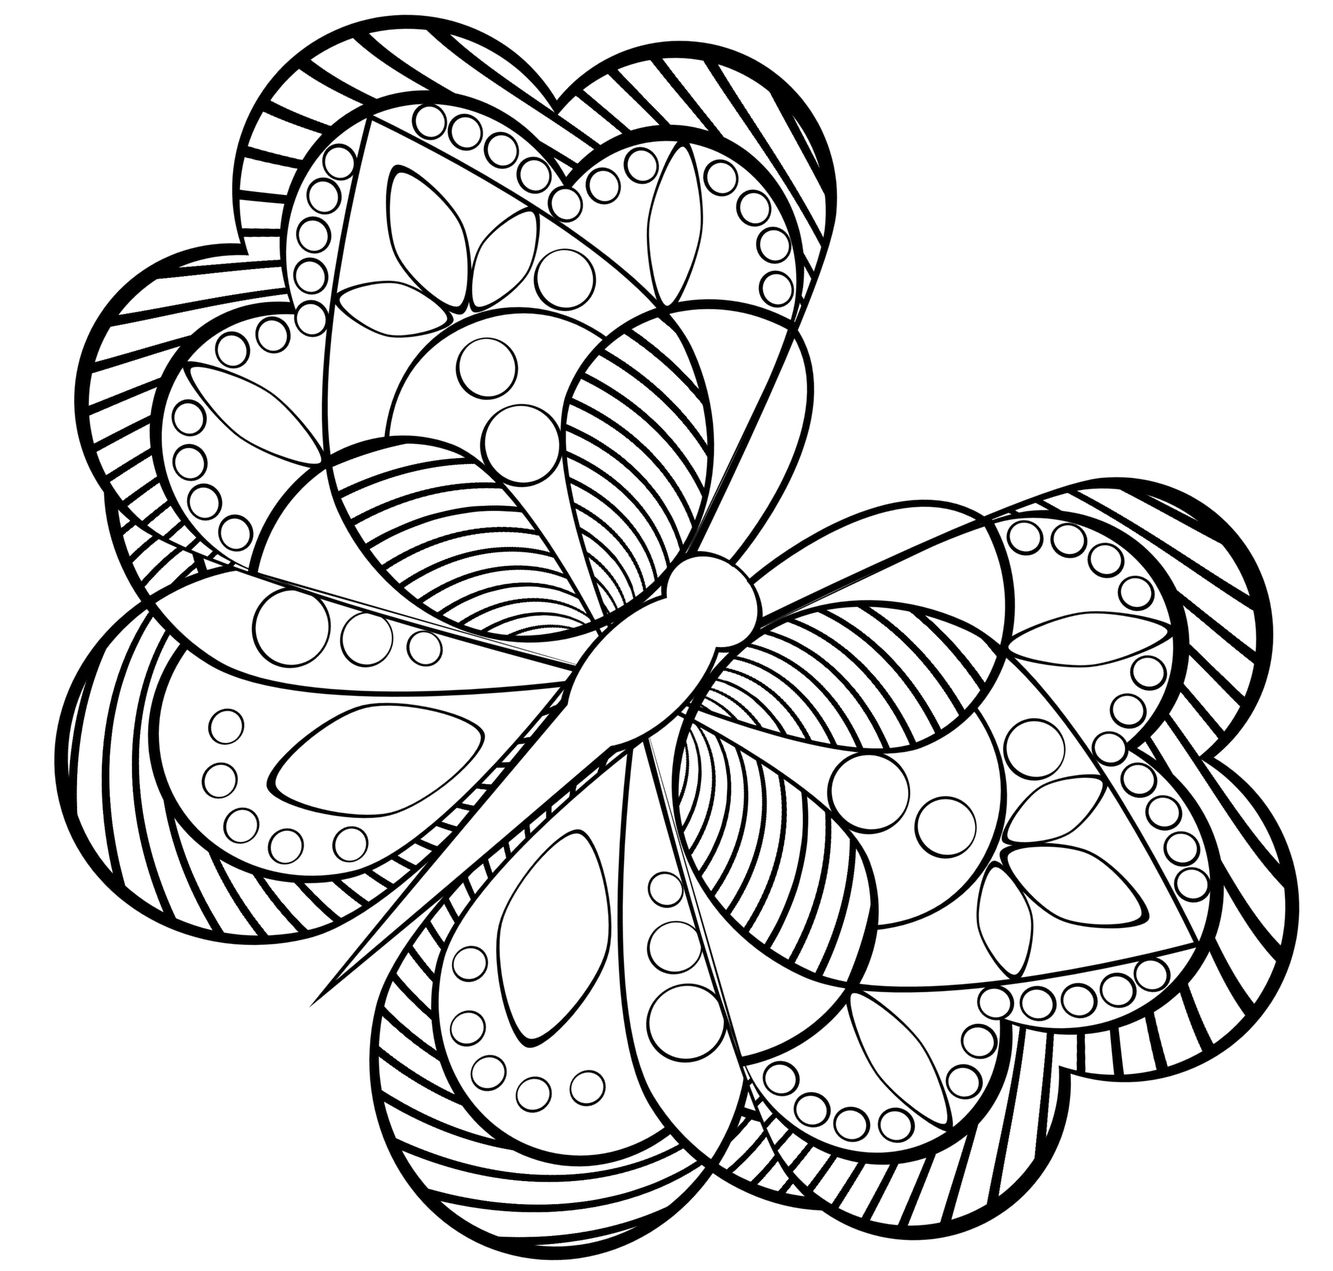 cool coloring pictures printable coloring pages for kids coloring pages for kids pictures coloring cool